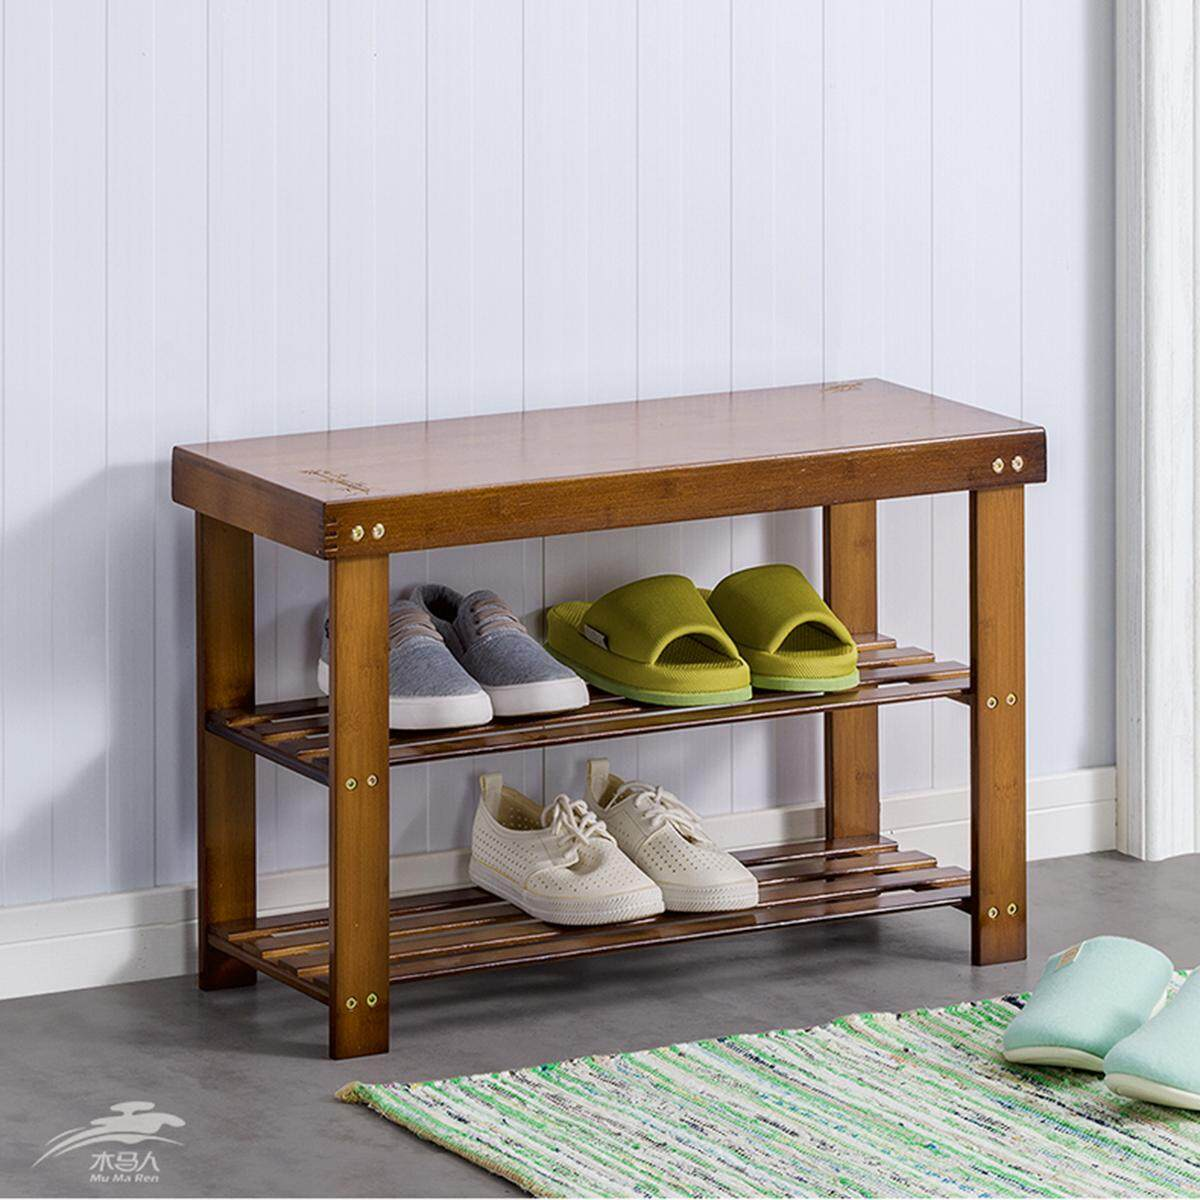 Mu Ma Ren Storage Benches Stools Multi-Purpose Shoe Stools Solid Wood Storage Stool Porch Multi-Layer Combination Shoe Racks